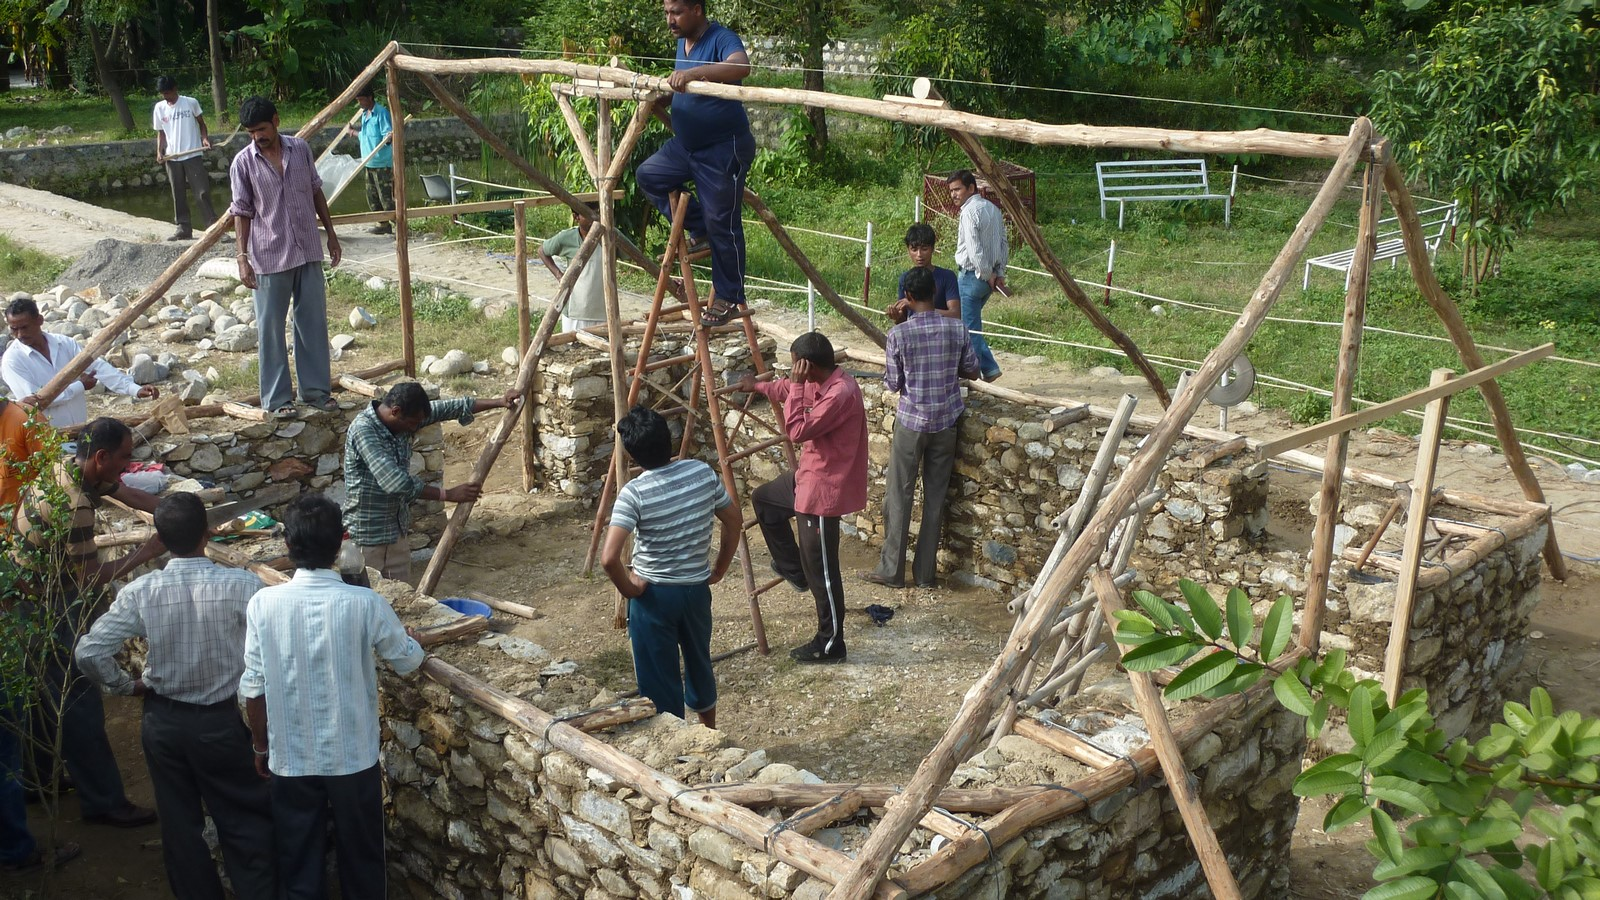 A review of Temporary architecture for disaster management in rural areas - Sheet3